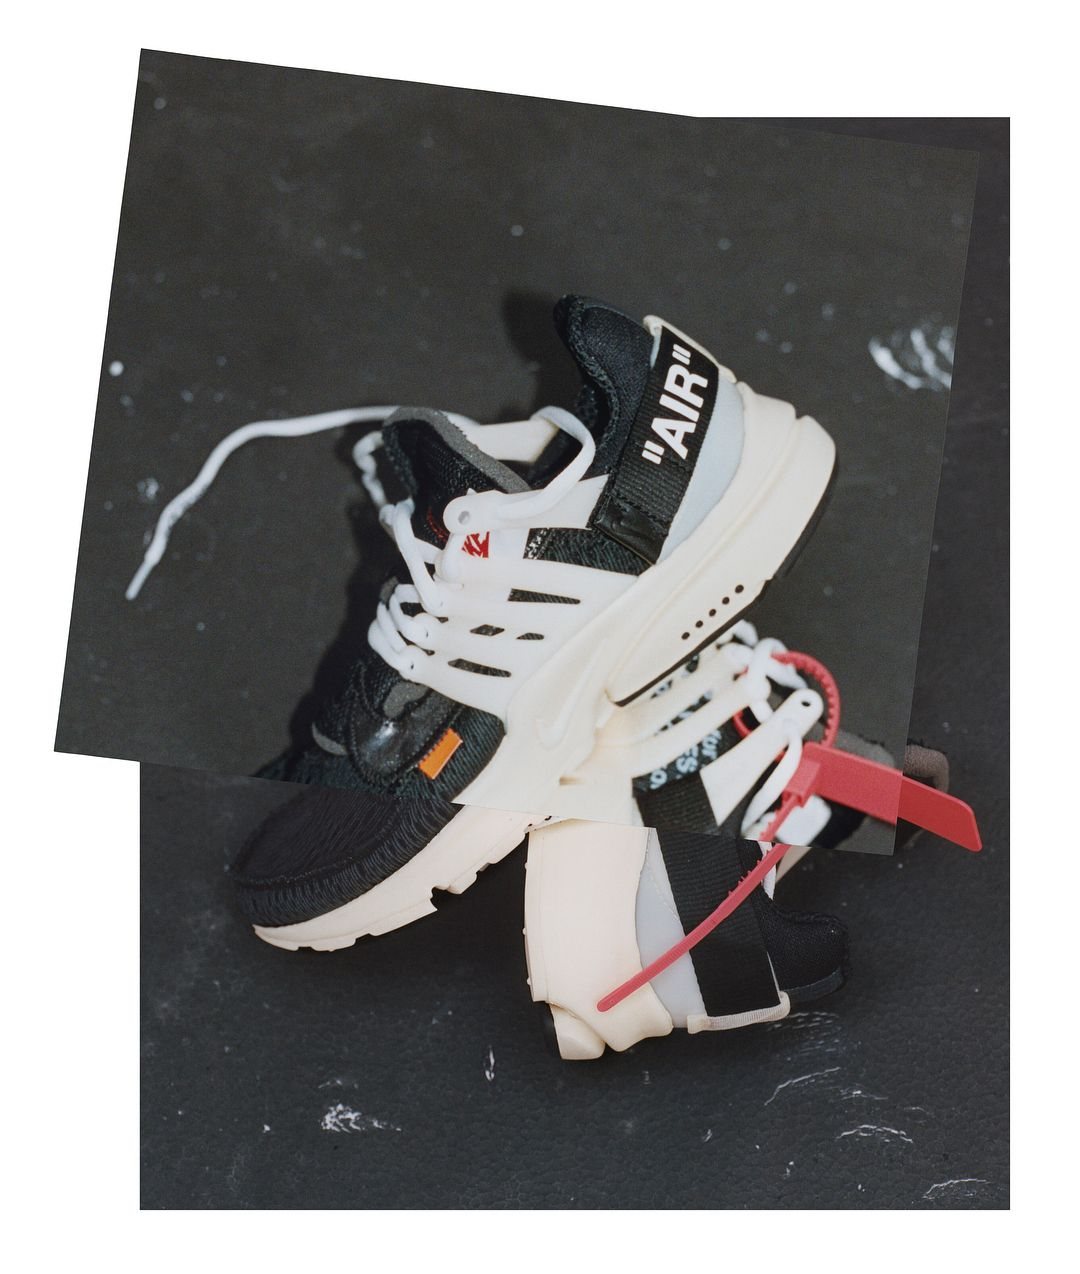 9a849c6f We've reopened the store raffles for the Nike x Off-White THE TEN Presto  and Air Max 90 for New York and Miami customers. The following releases  will be ...